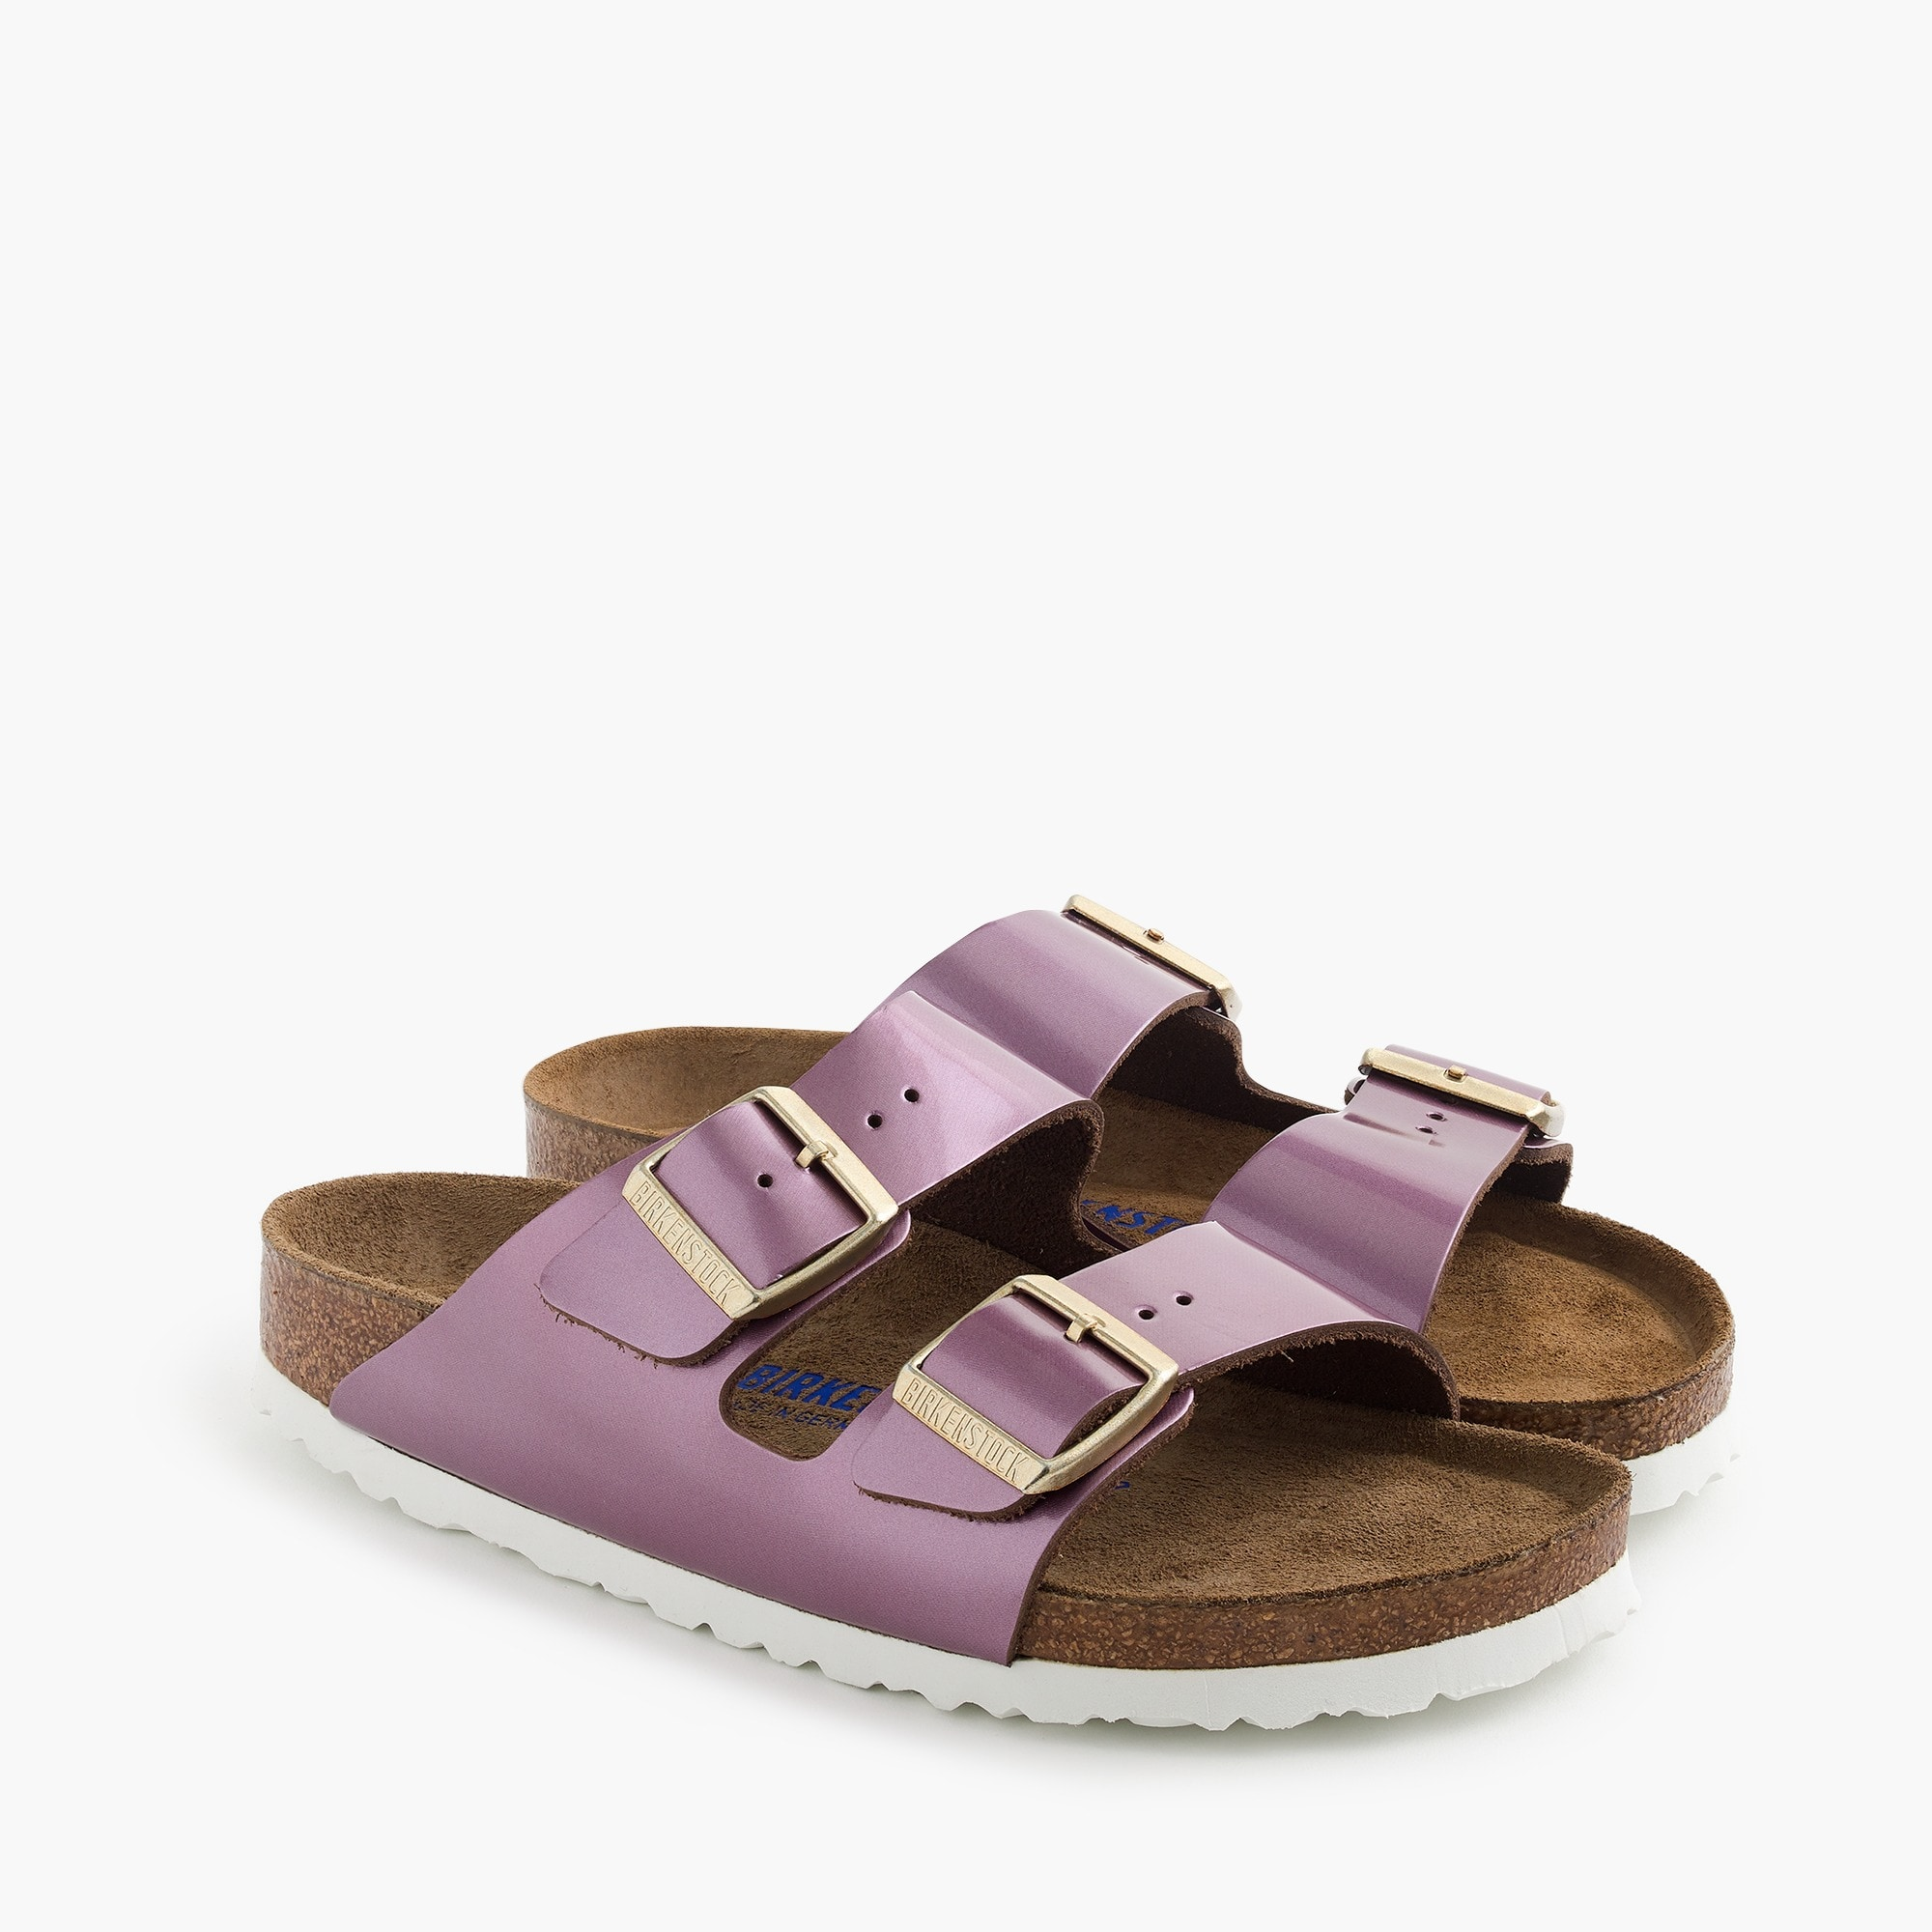 Women's Birkenstock® Arizona sandals women j.crew in good company c